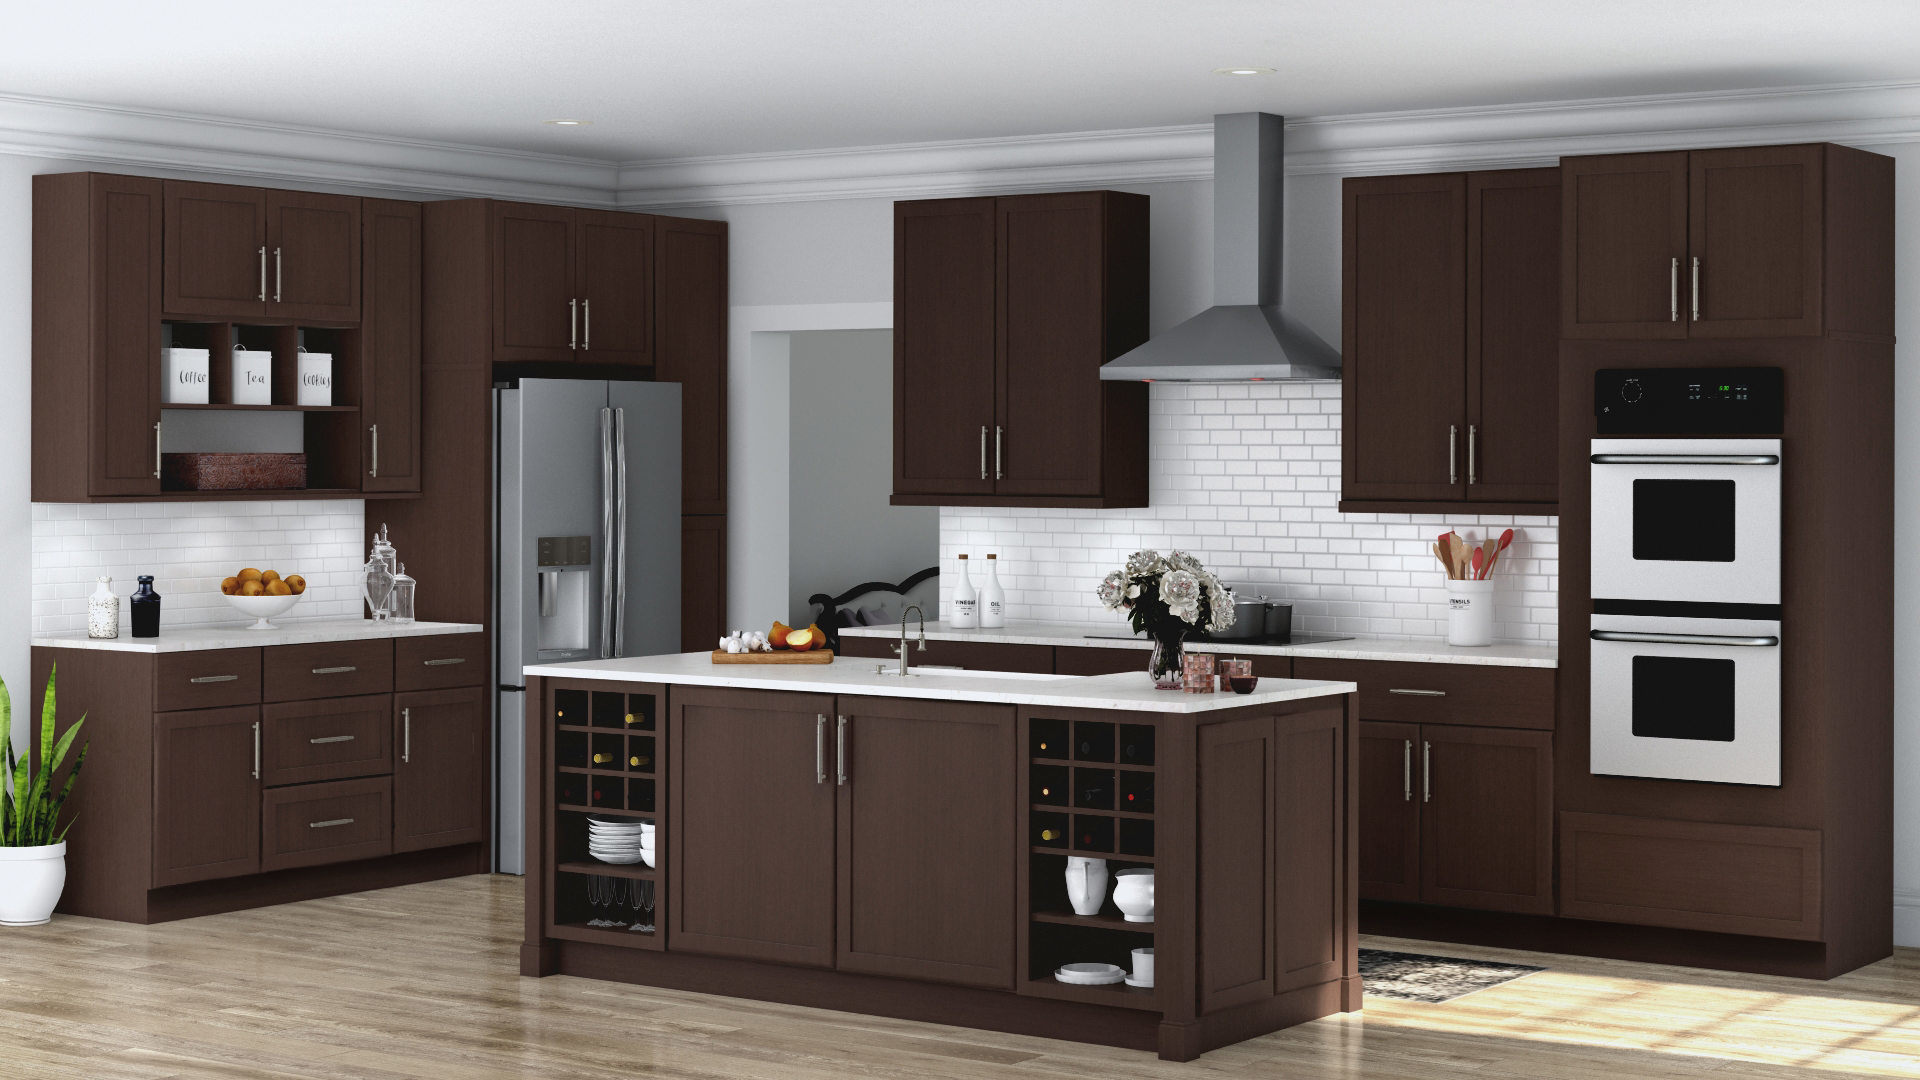 Shaker Specialty Kitchen Cabinets In Java Kitchen The